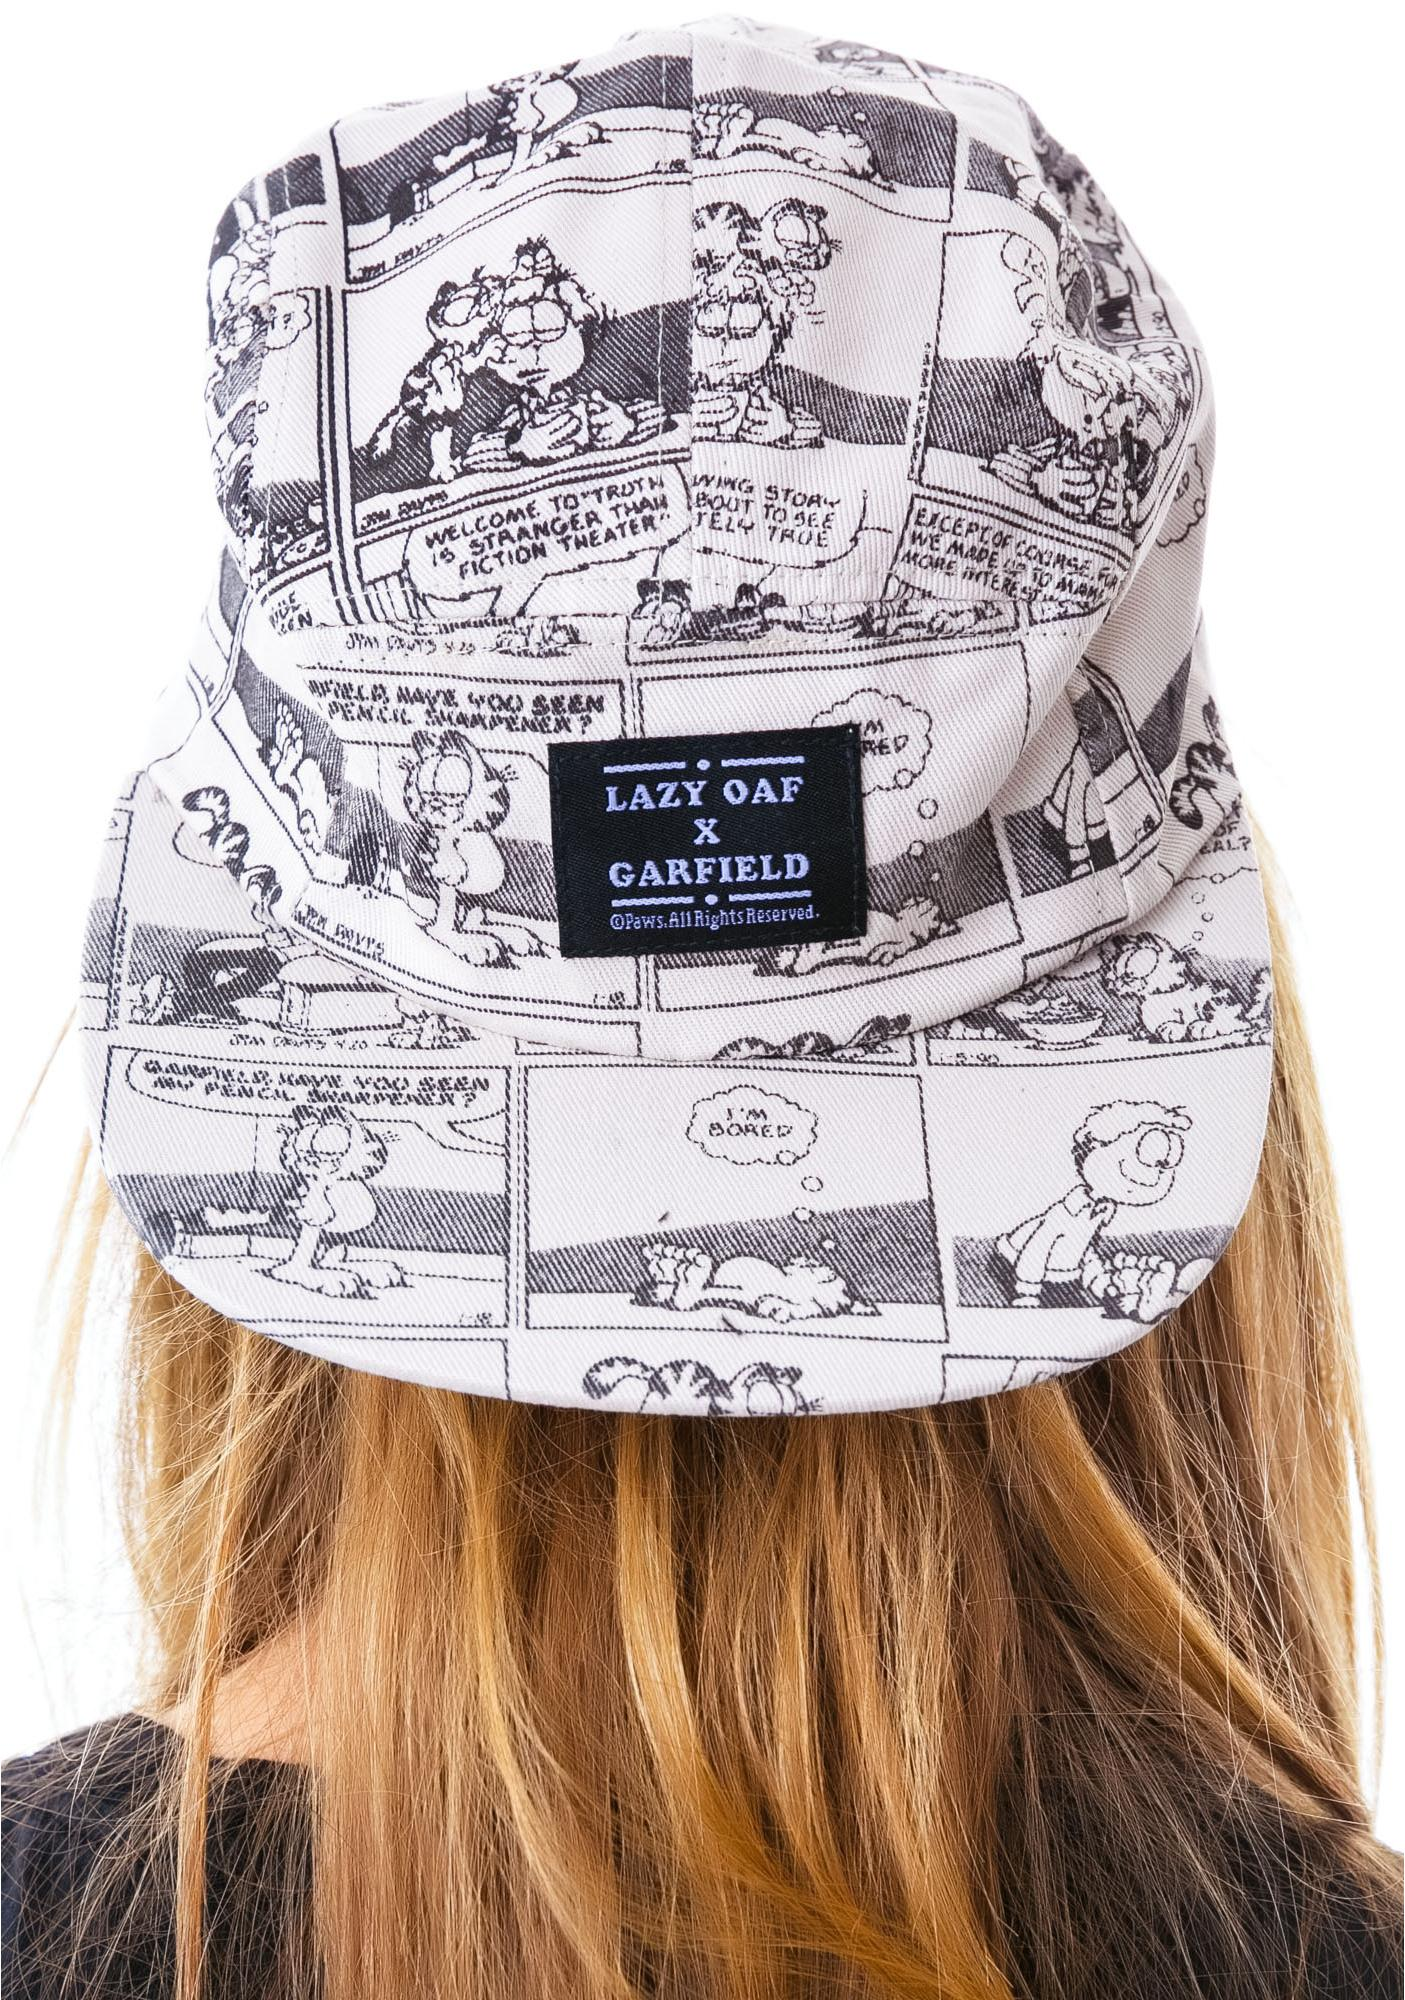 Lazy Oaf x Garfield News Cap